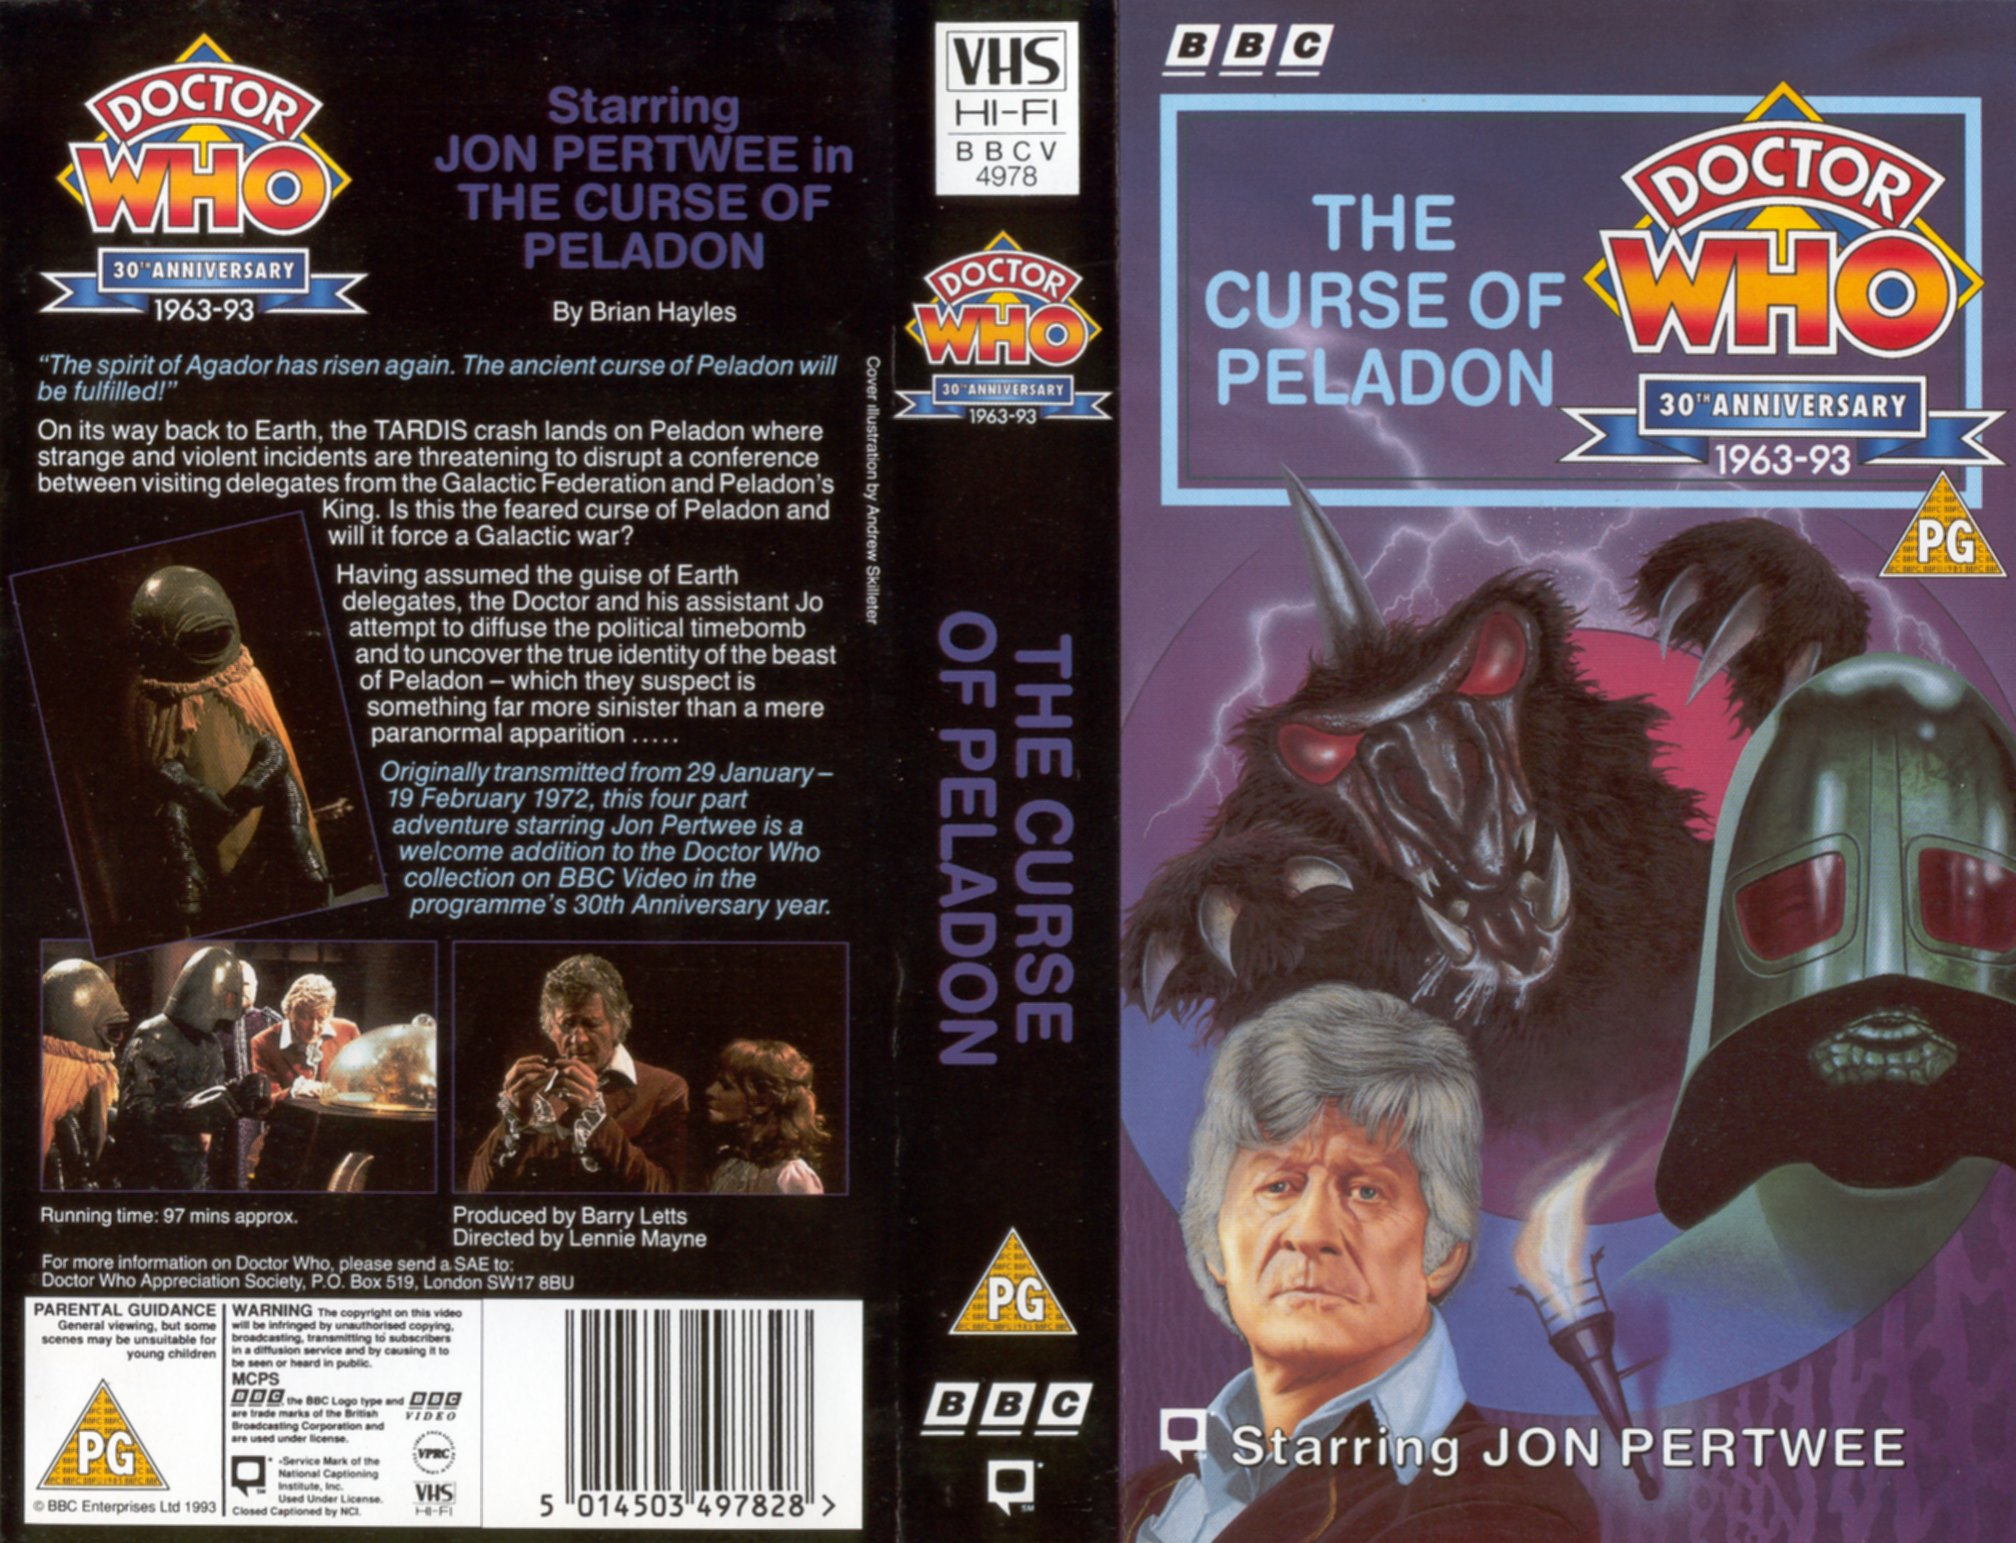 The Curse of Peladon VHS